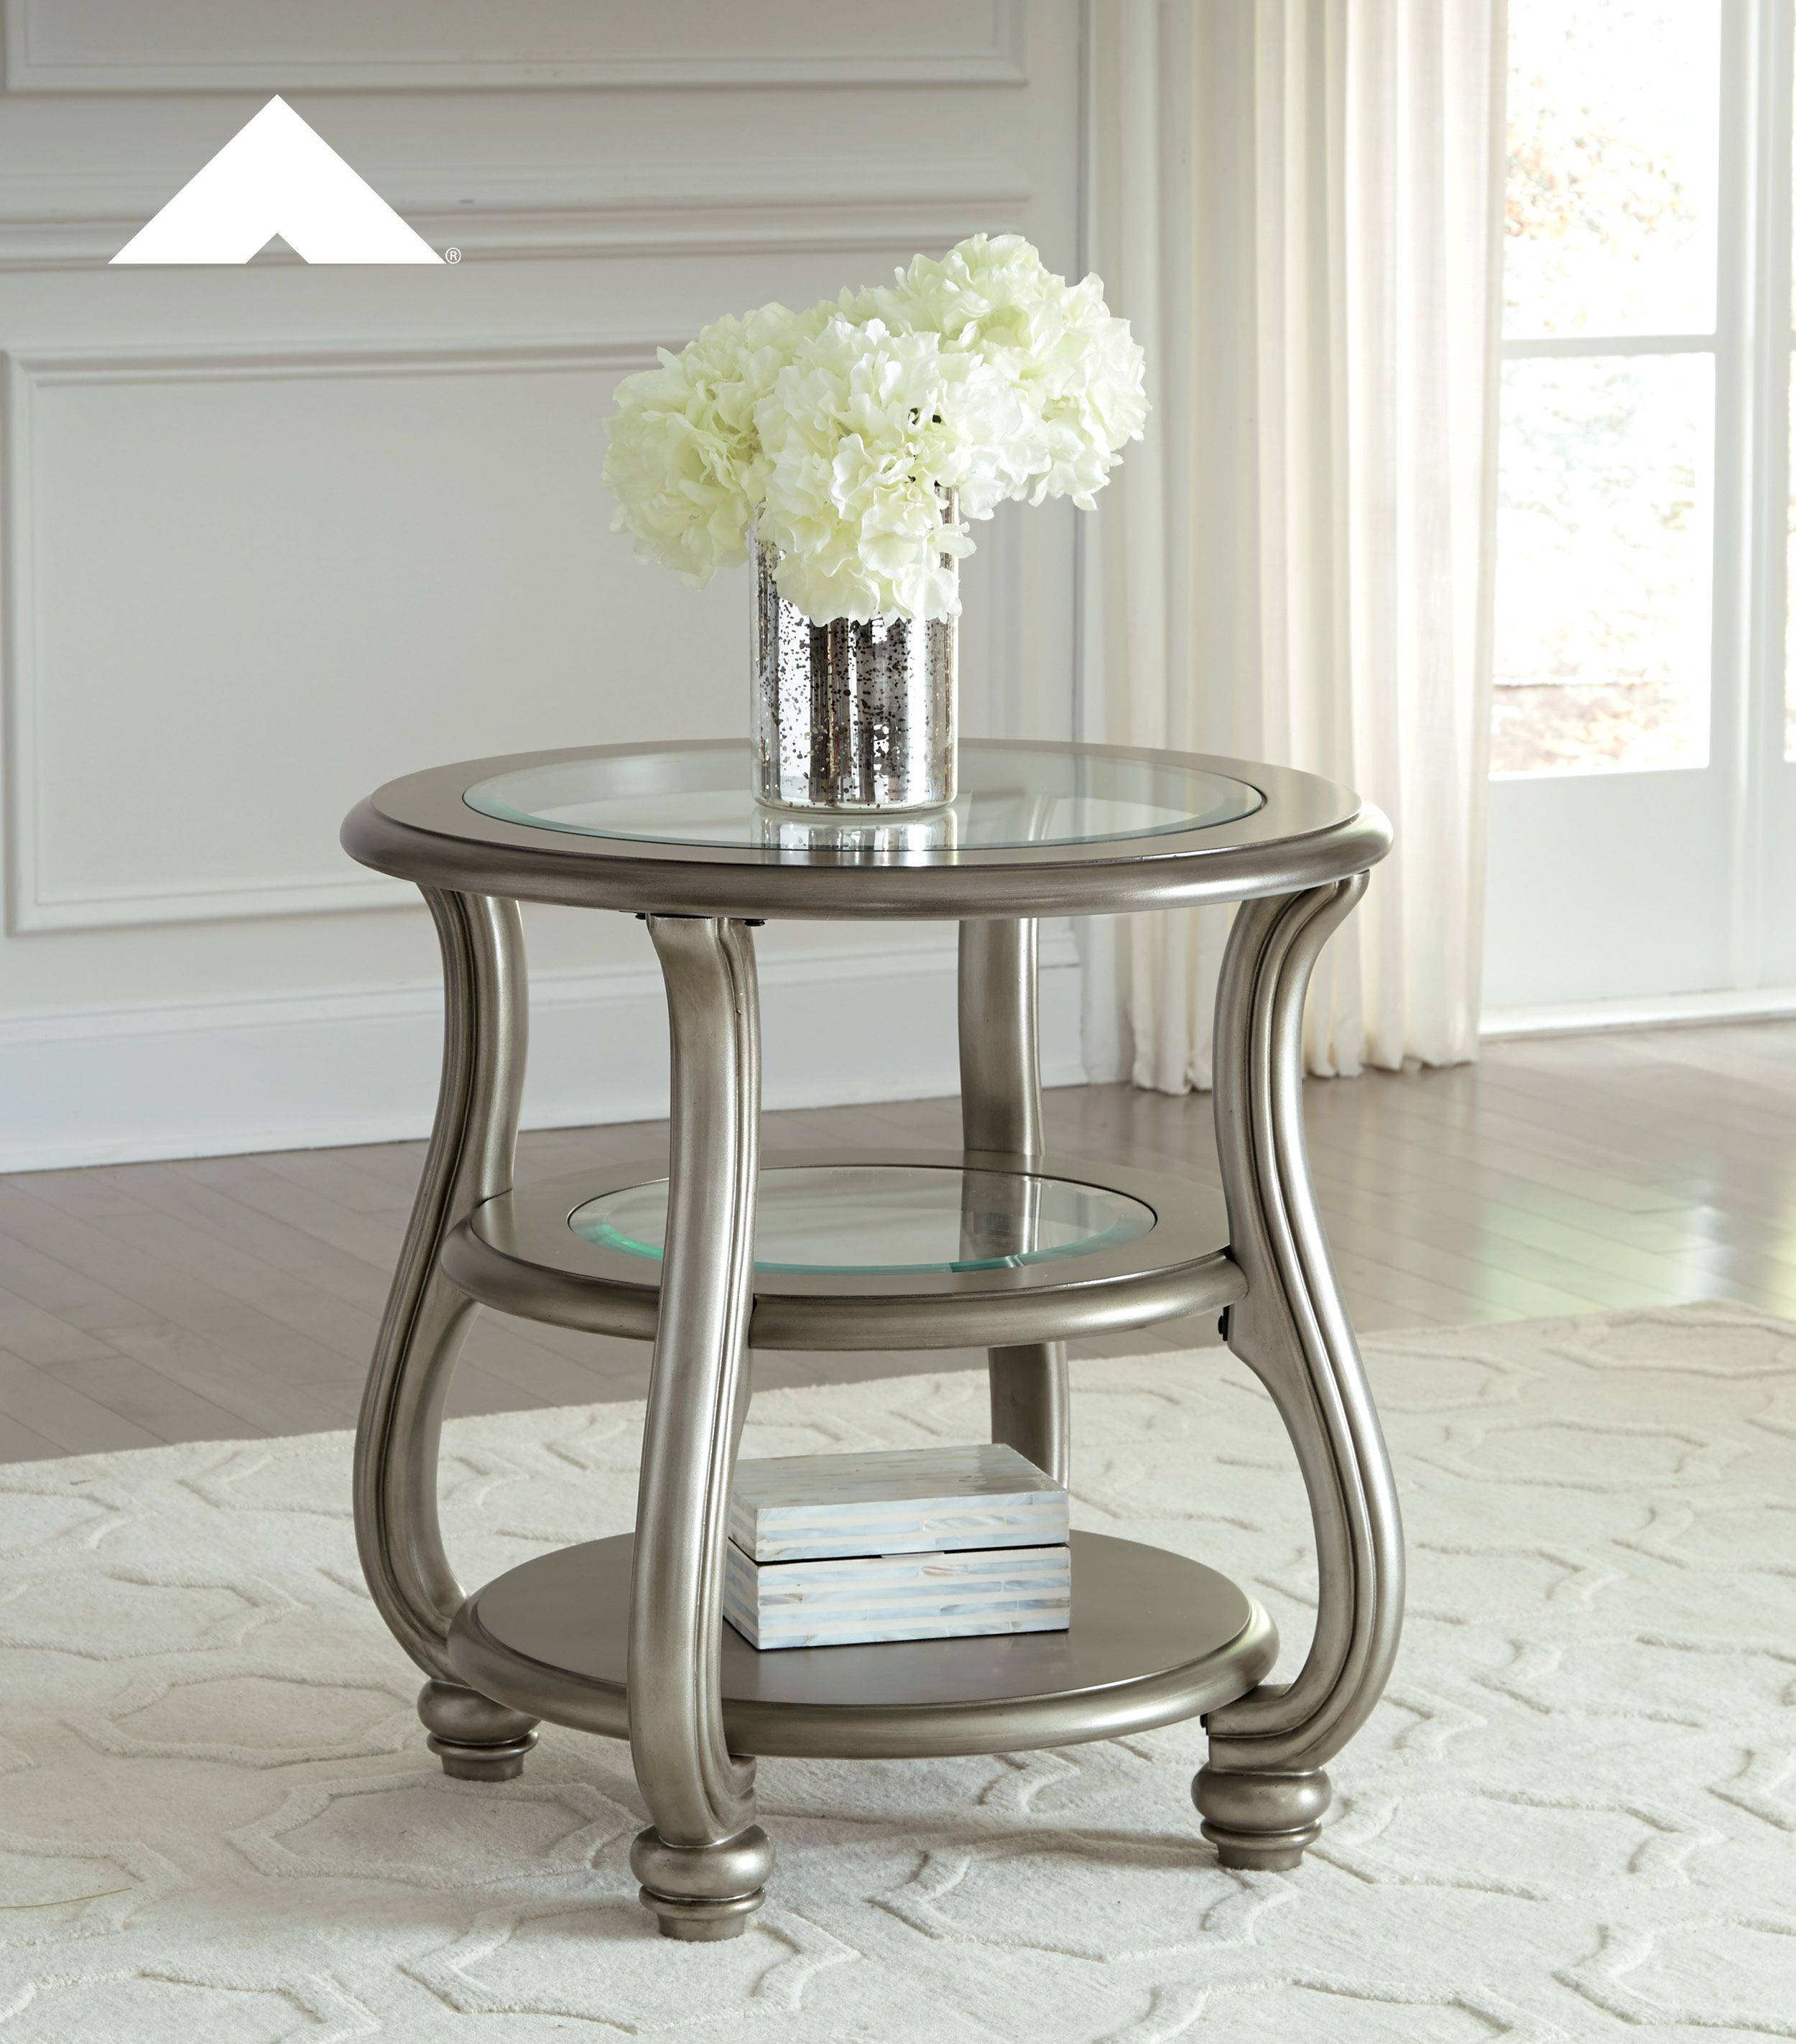 Coralayne metal silver finish hollywood inspired round end table by ashley furniture ashleyfurniture homedecor livingroom table tables